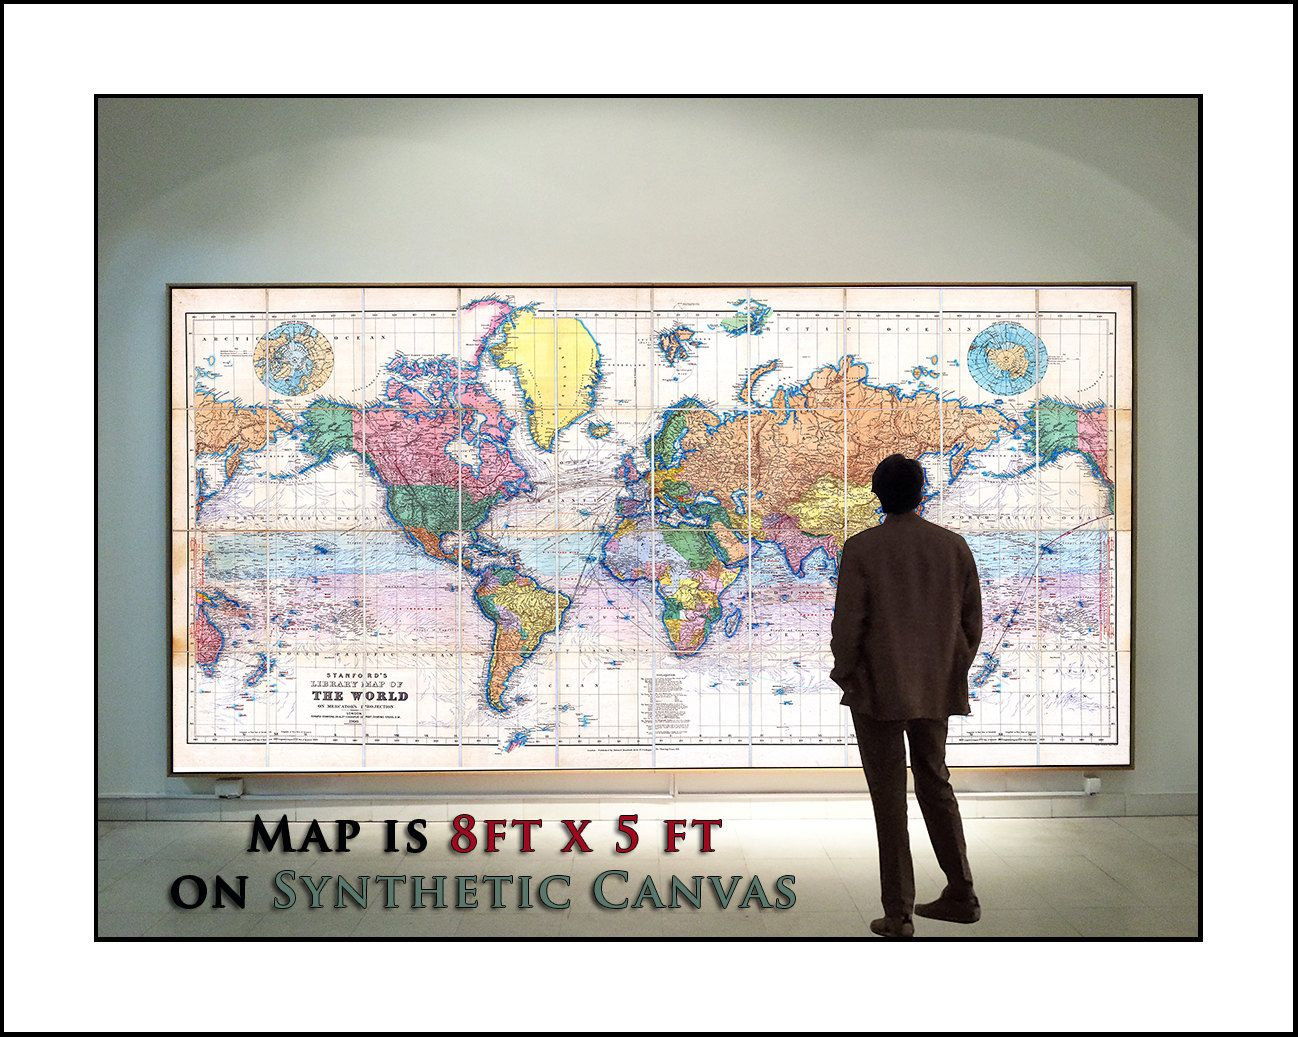 Map of the World, World Map on 5foot x 8foot Synthetic Canvas, HUGE and Very COOL par WaterColorMaps sur Etsy https://www.etsy.com/fr/listing/194014604/map-of-the-world-world-map-on-5foot-x